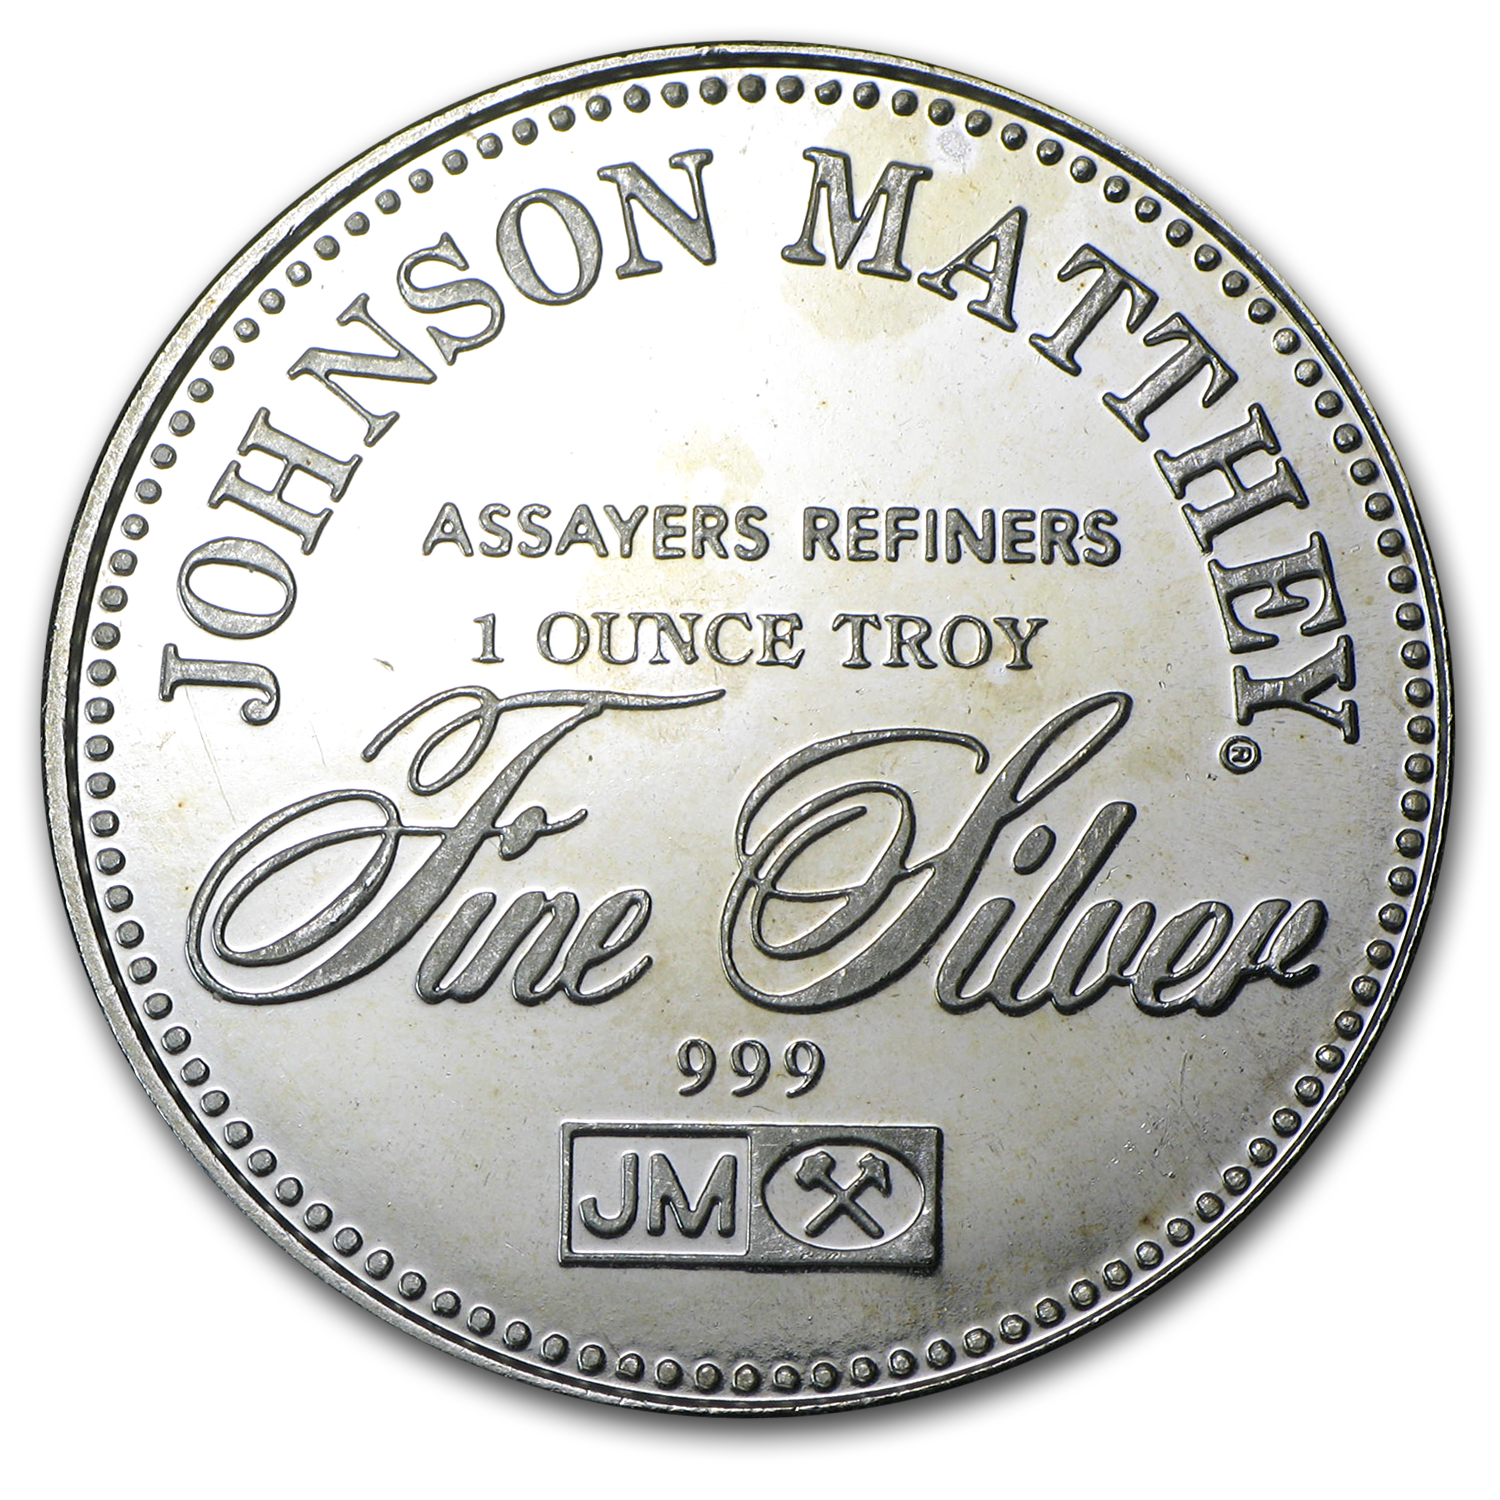 1 oz Silver Rounds - Johnson Matthey (Right to Bear Arms)